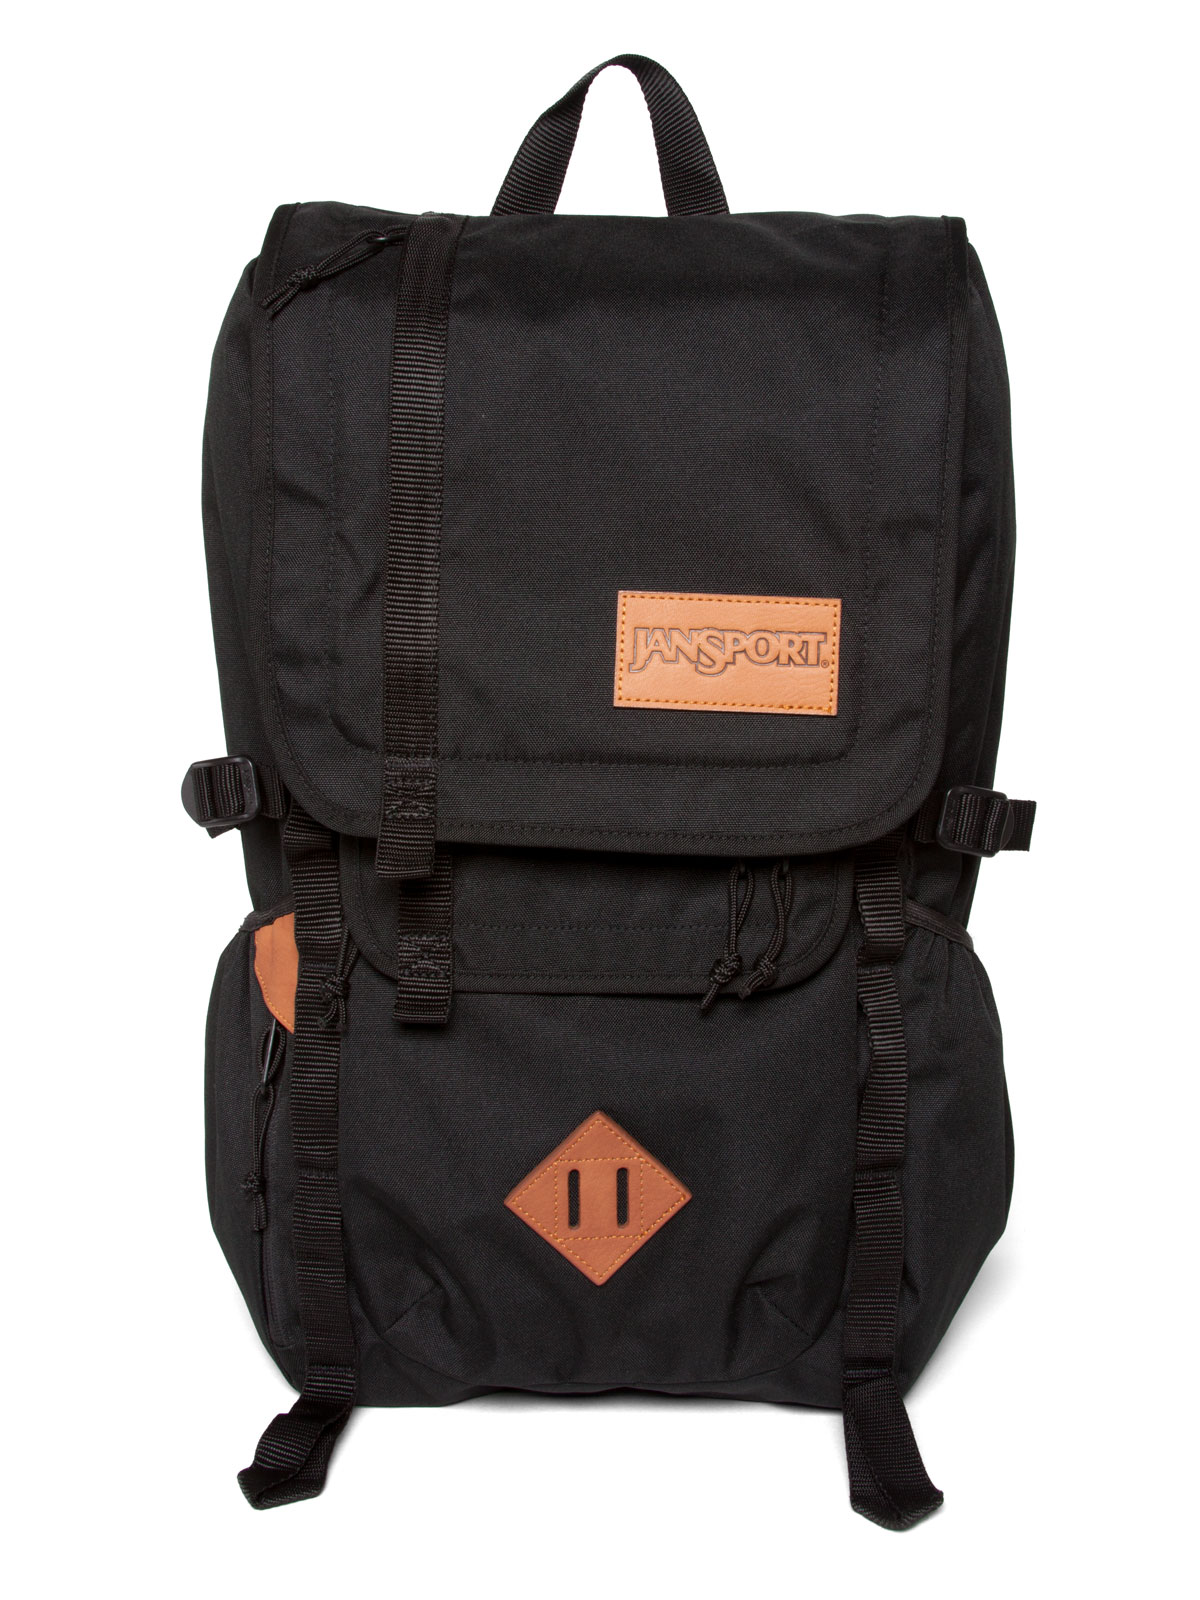 JanSport Hatchet Backpack, Black - Walmart.